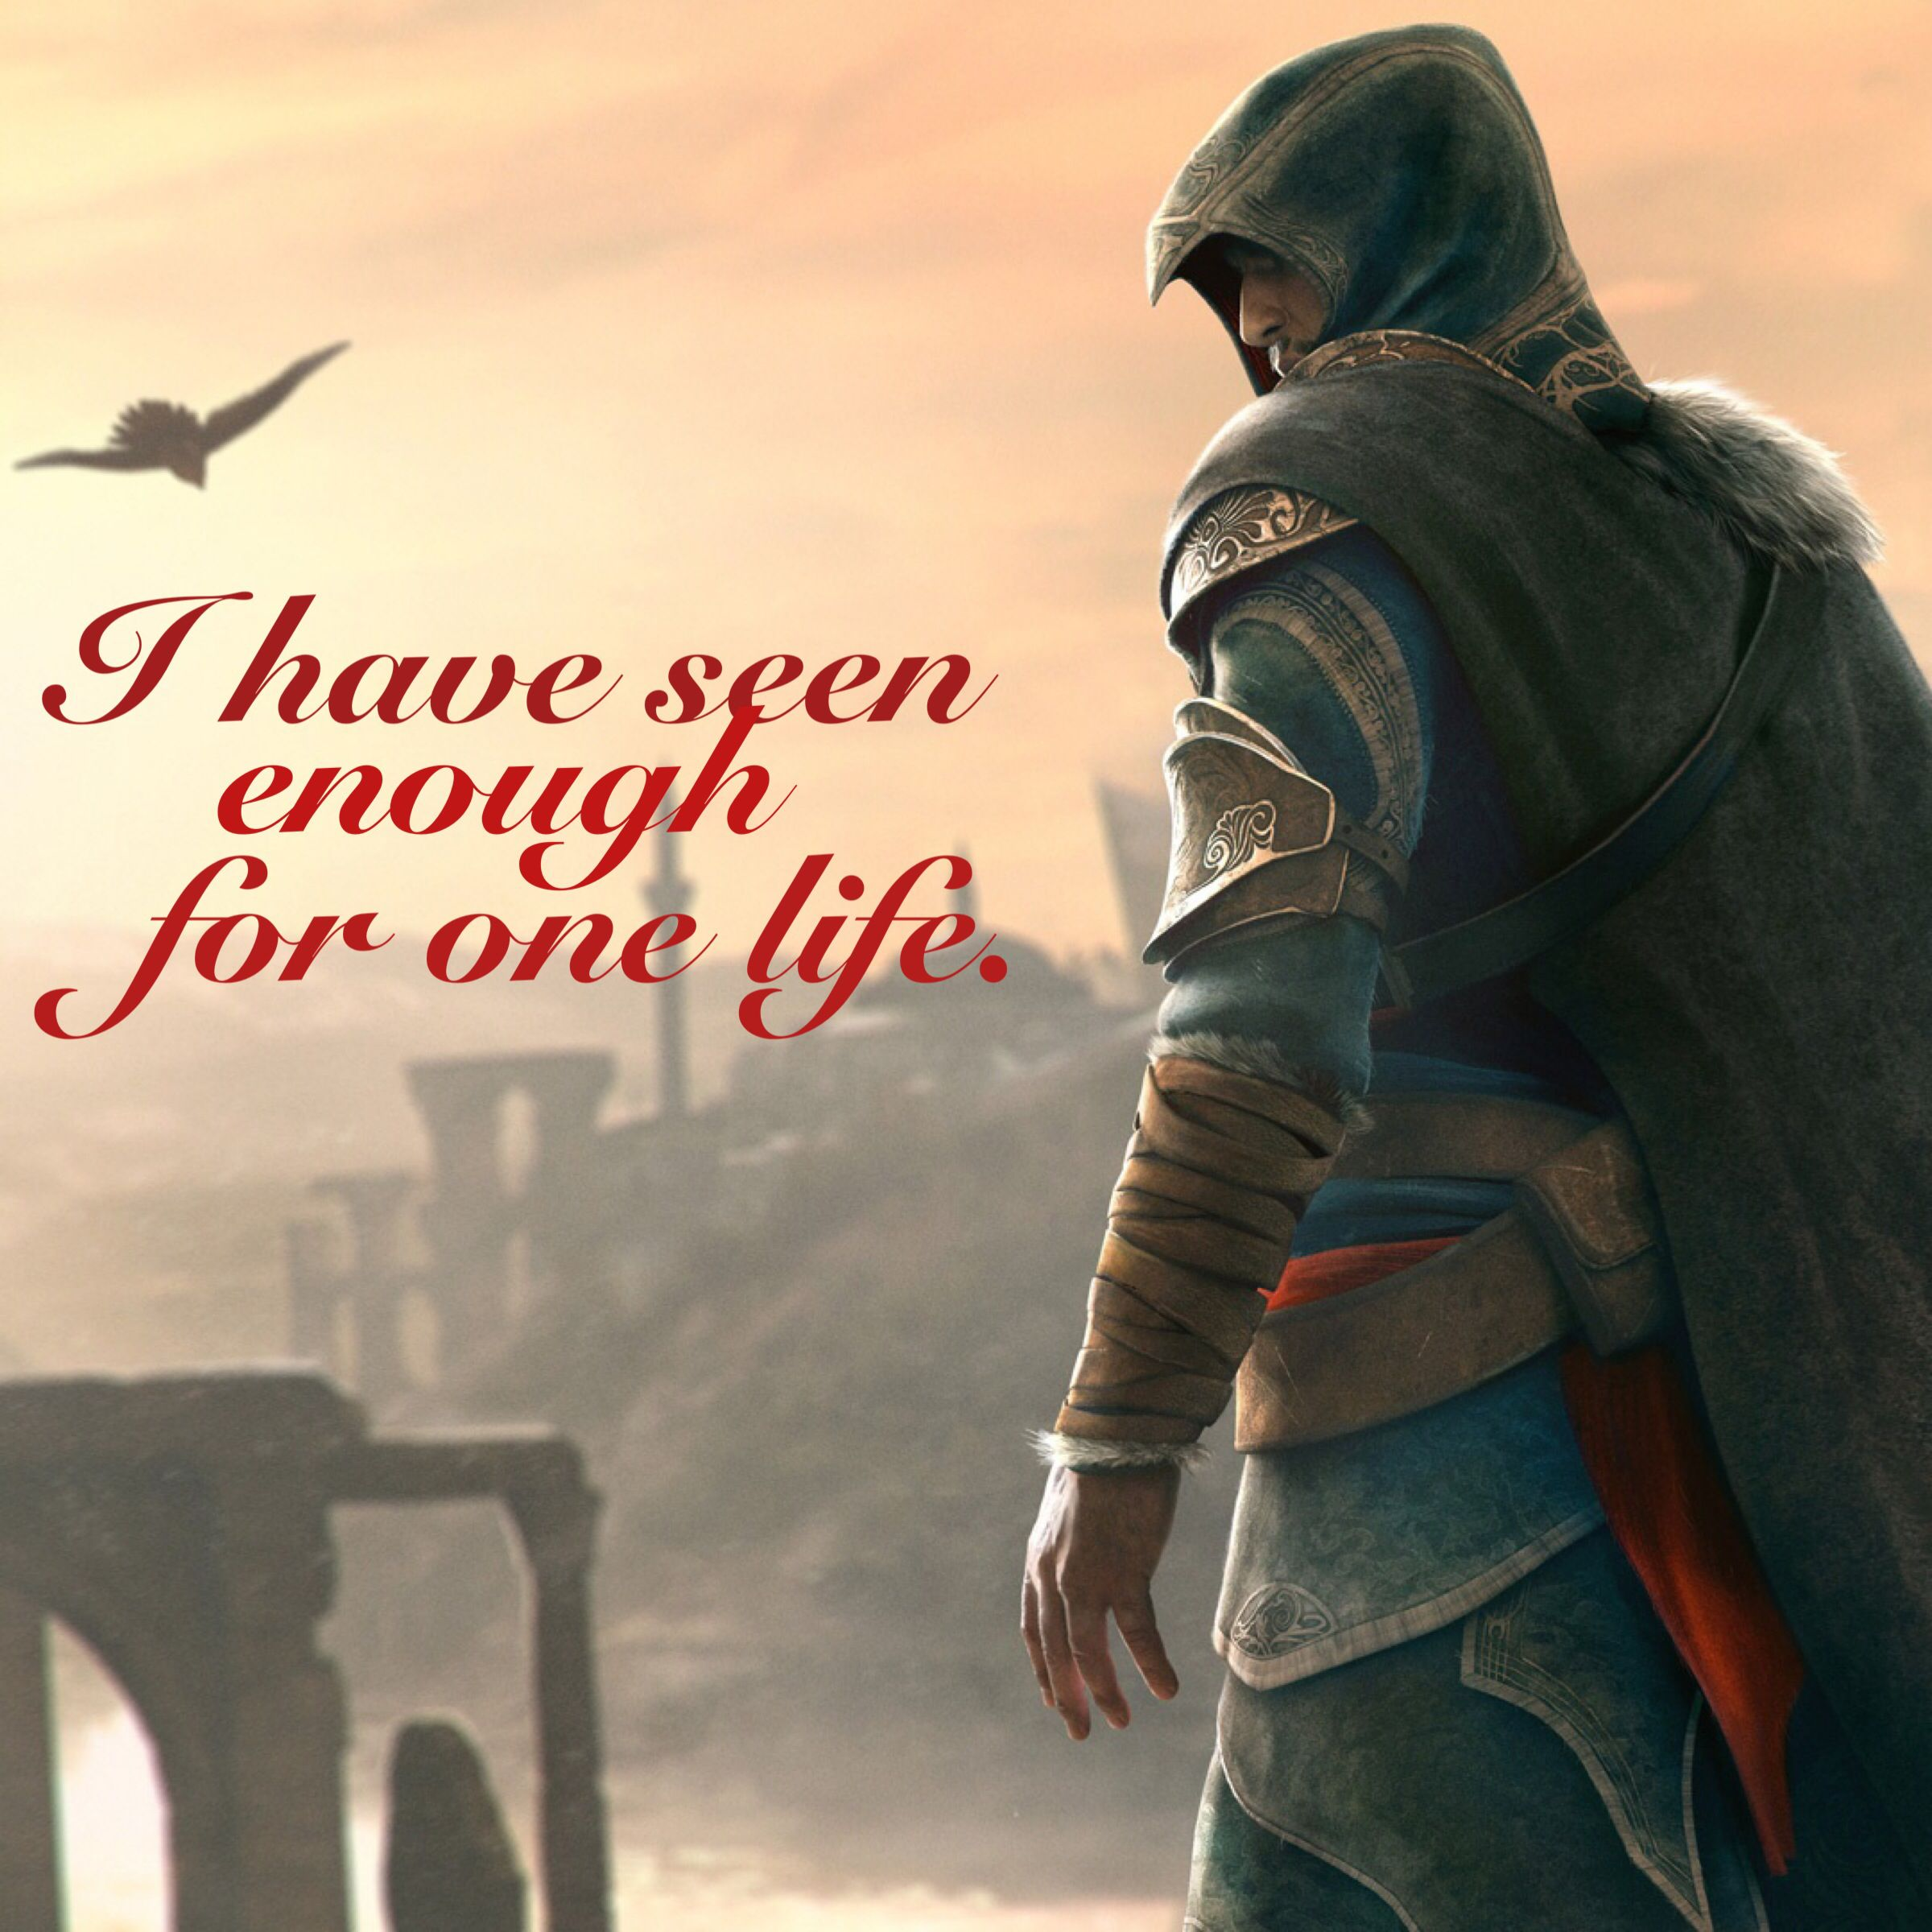 Assassin S Creed Quote Wallpaper Assassin S Creed Revelations Ezio Auditore Da Firenze Assassins Creed Quotes Creed Quotes Assassins Creed